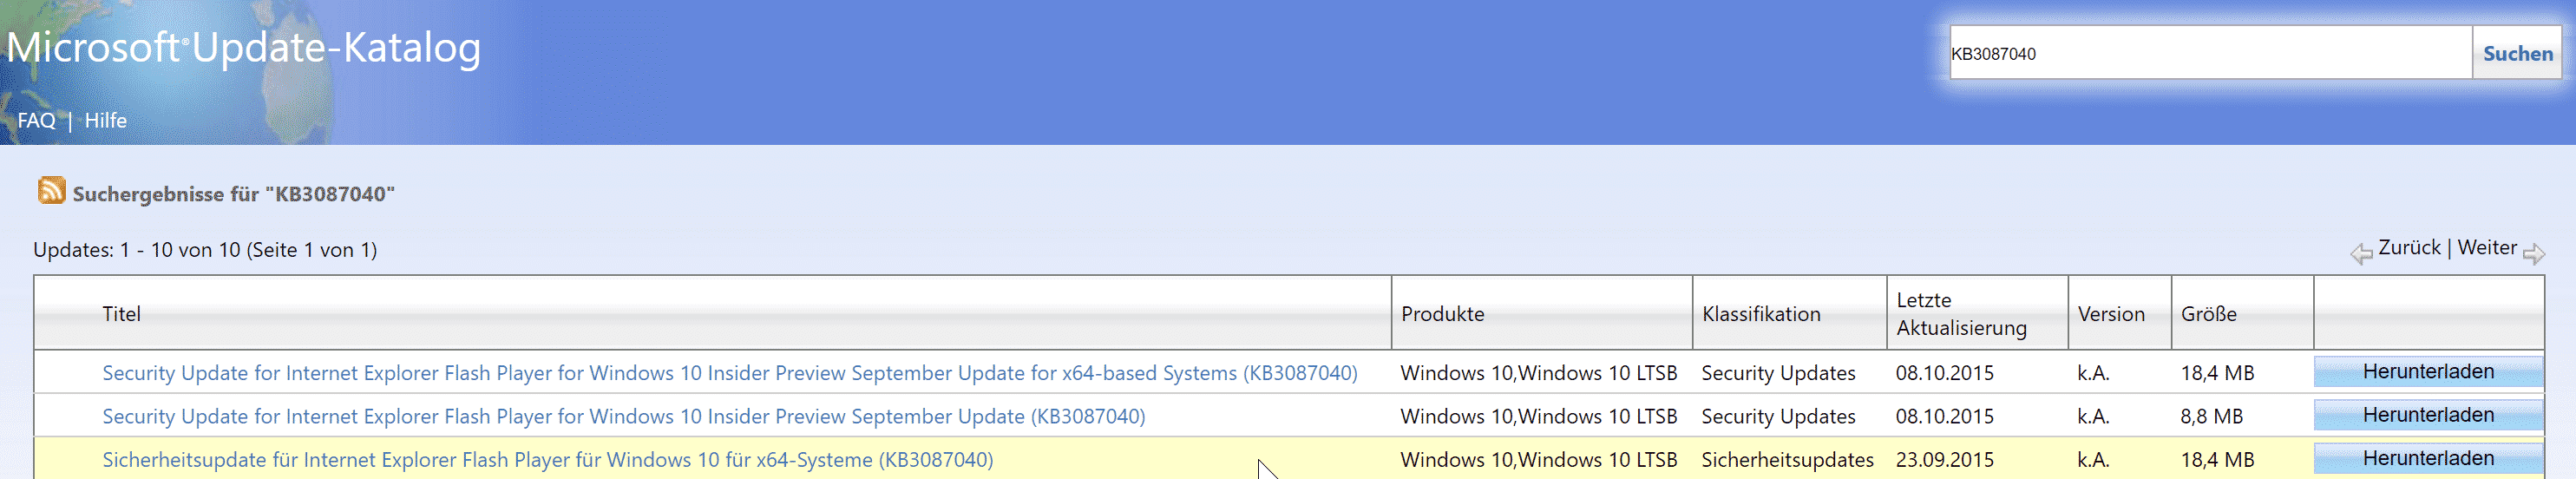 windows-update-catalog-kb3087040